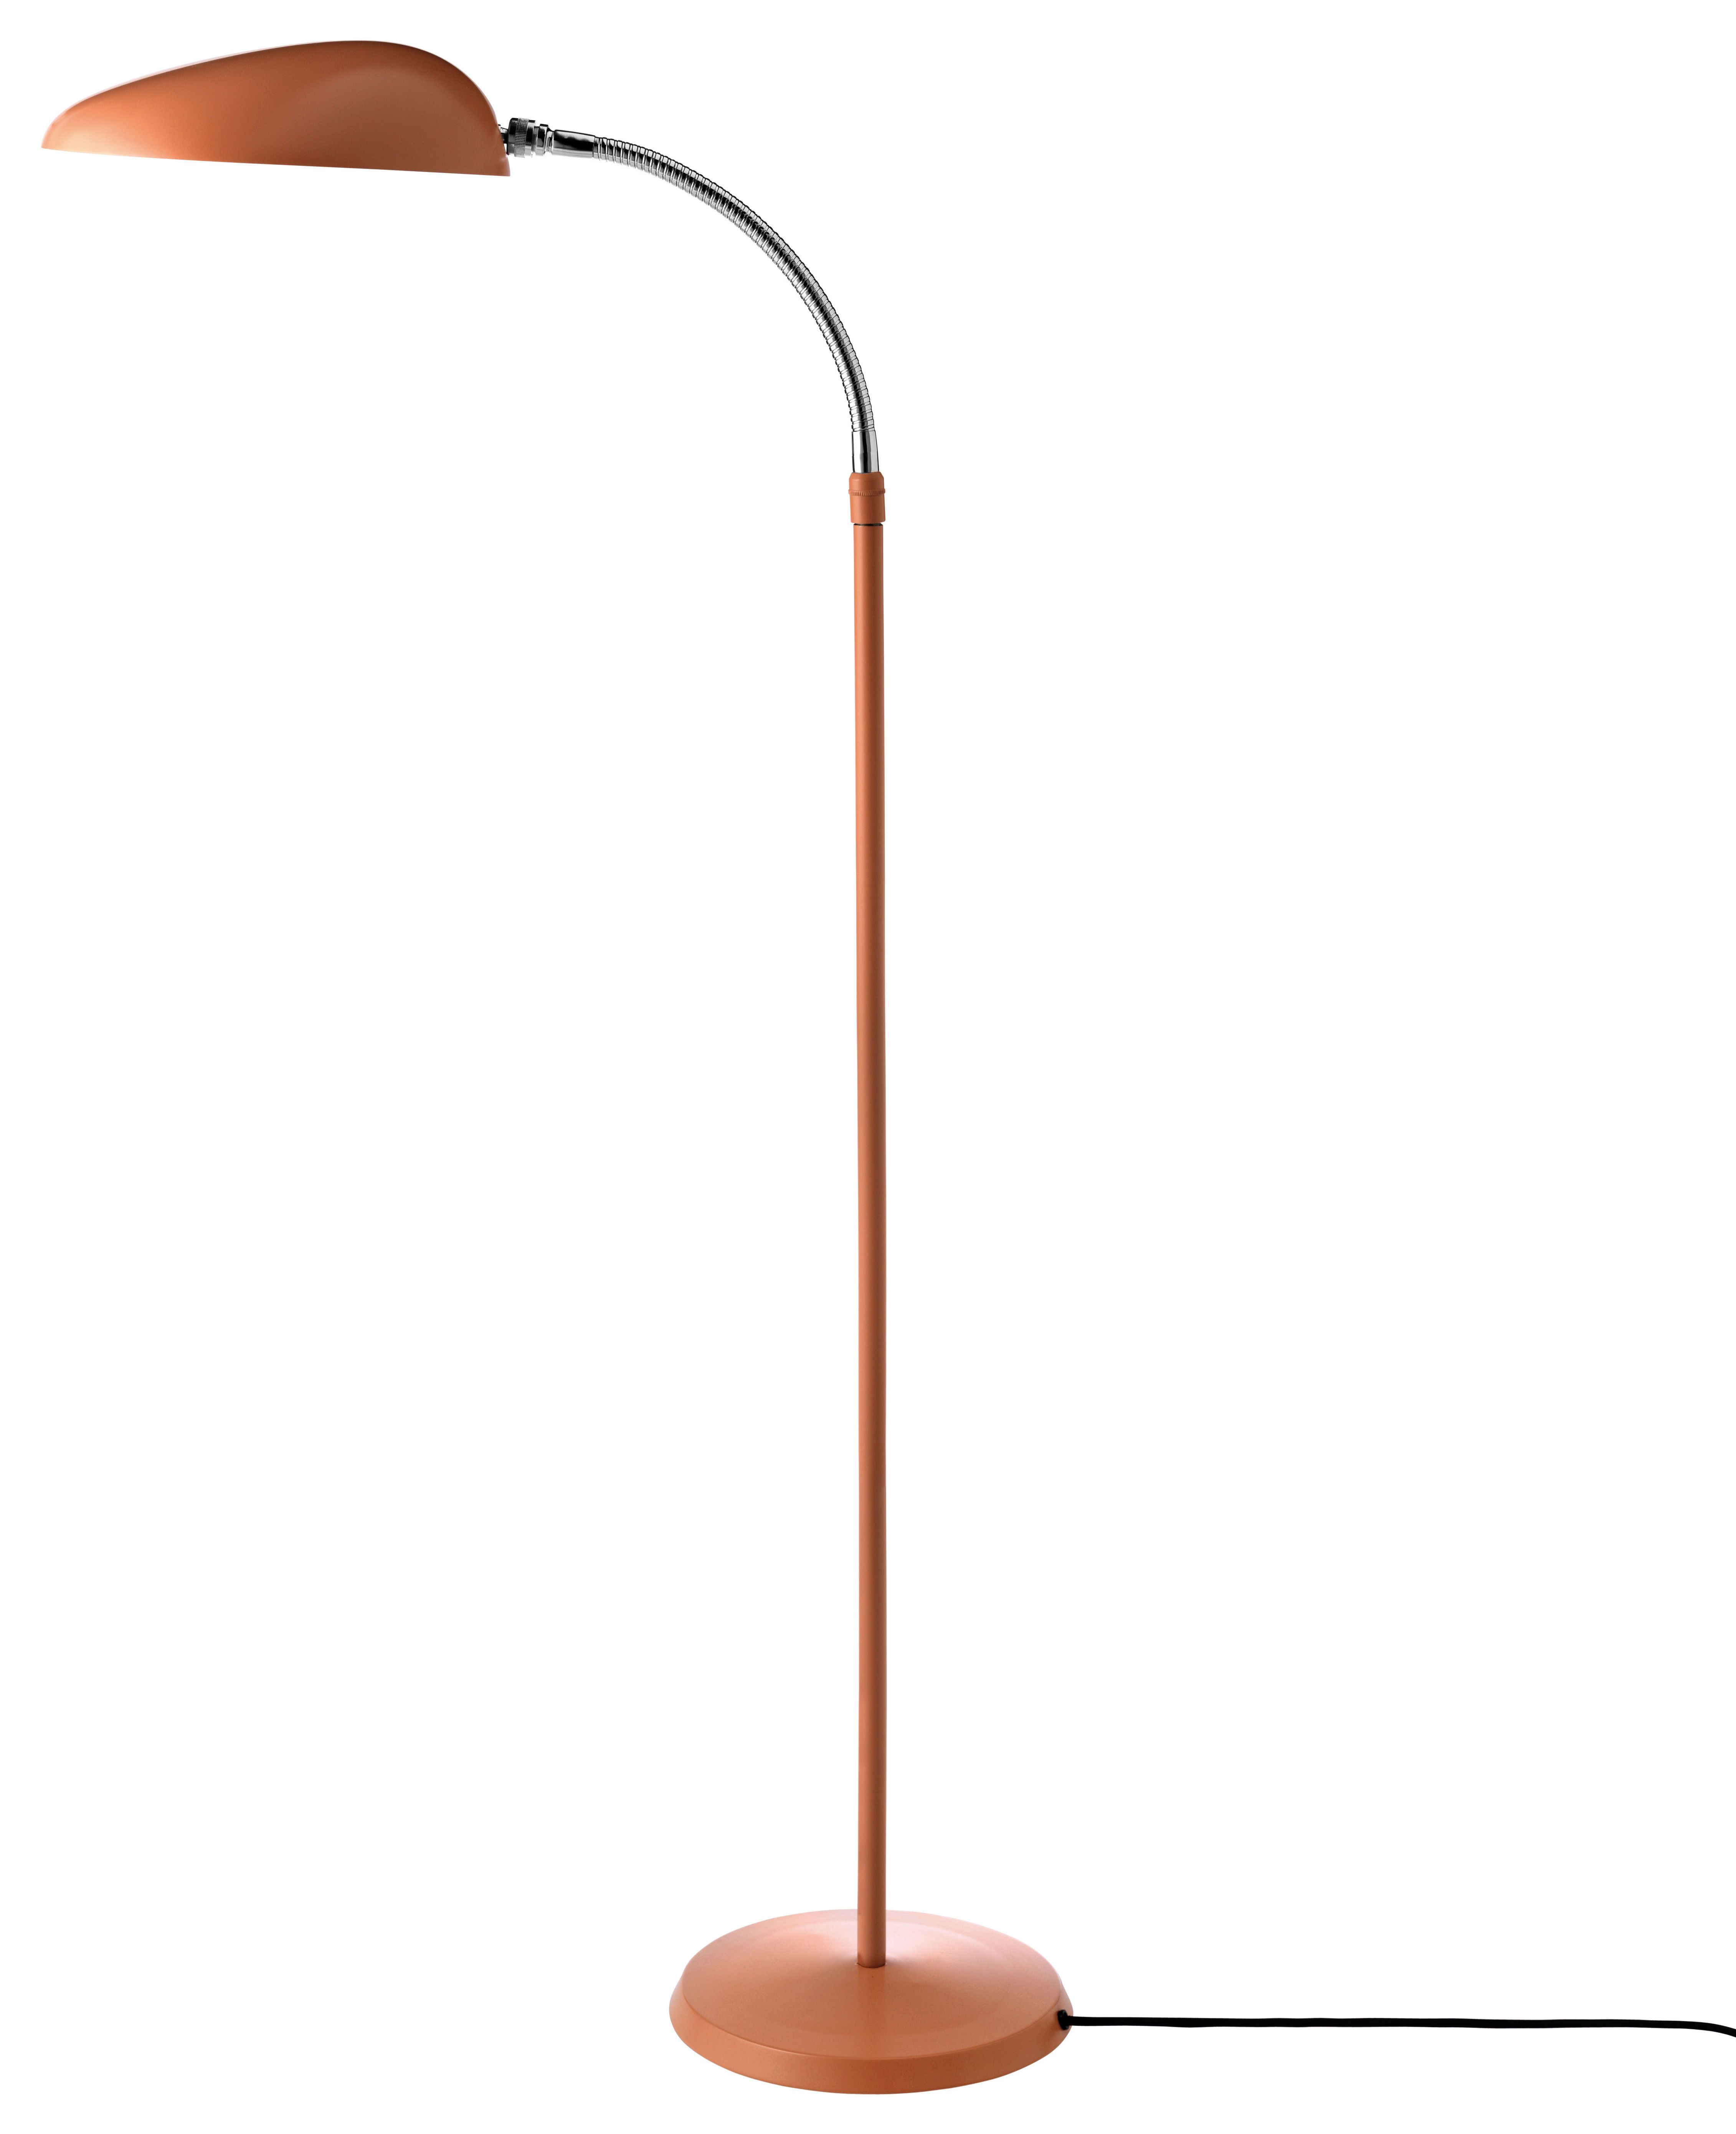 Lighting - Floor lamps - Cobra Floor lamp - Reissue 1949 by Gubi - Old pink - Powder coated steel